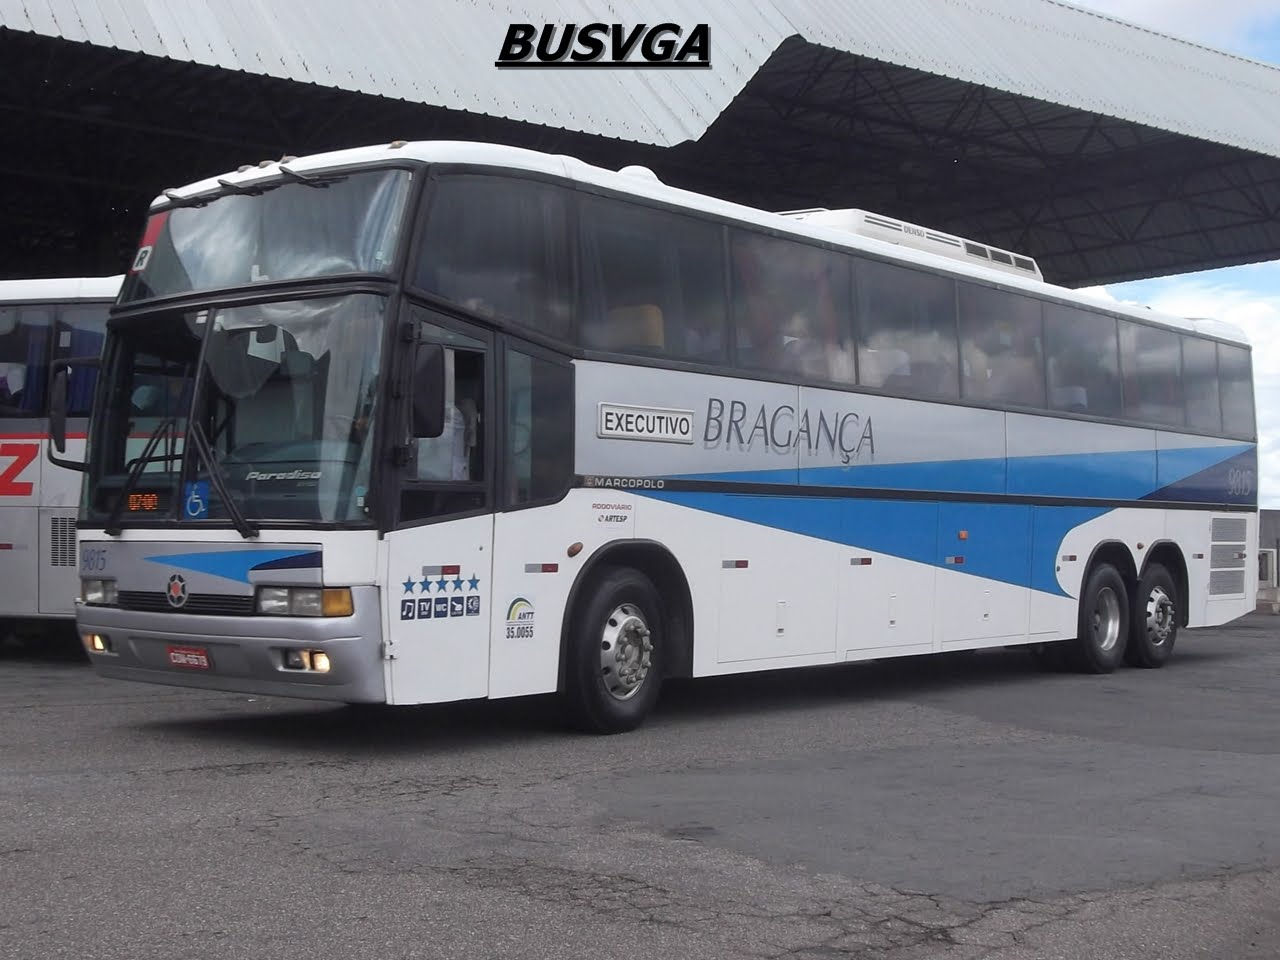 Bus cia auto via o bragan a fotos da net for Table 52 go bus